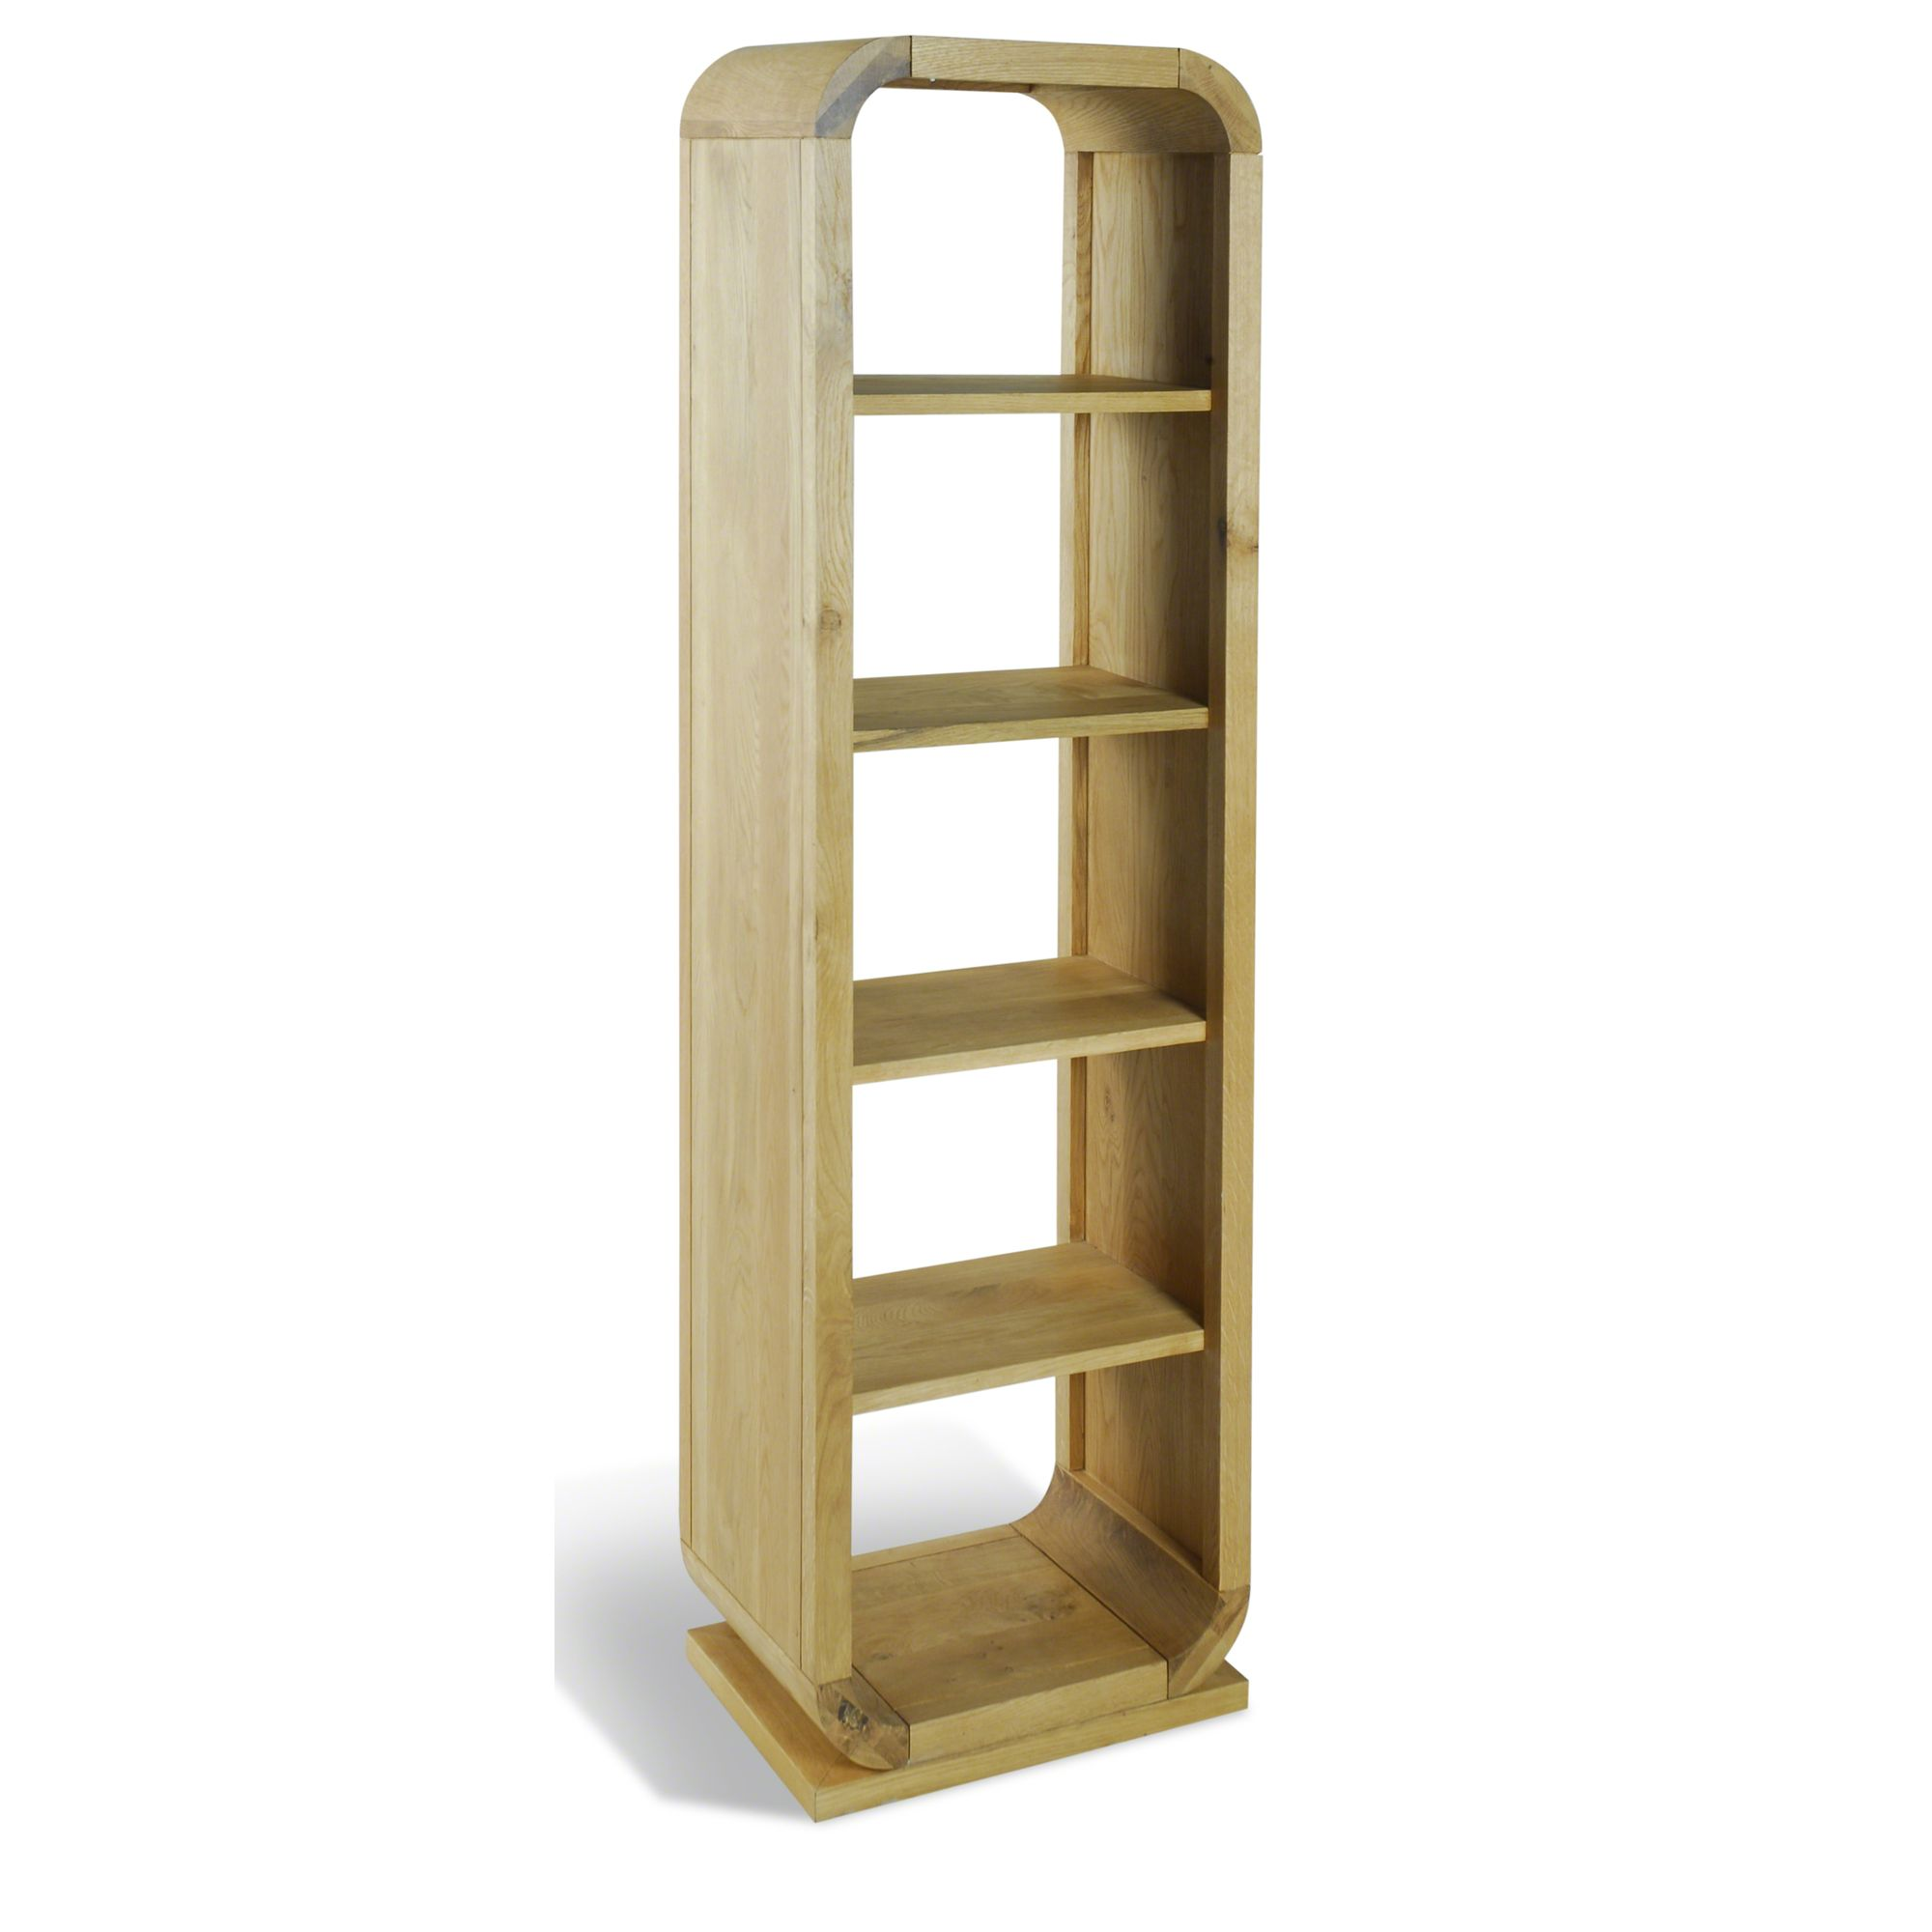 Oceans Apart Cadence Oak Open Back Four Shelves Unit - Oak at Tesco Direct